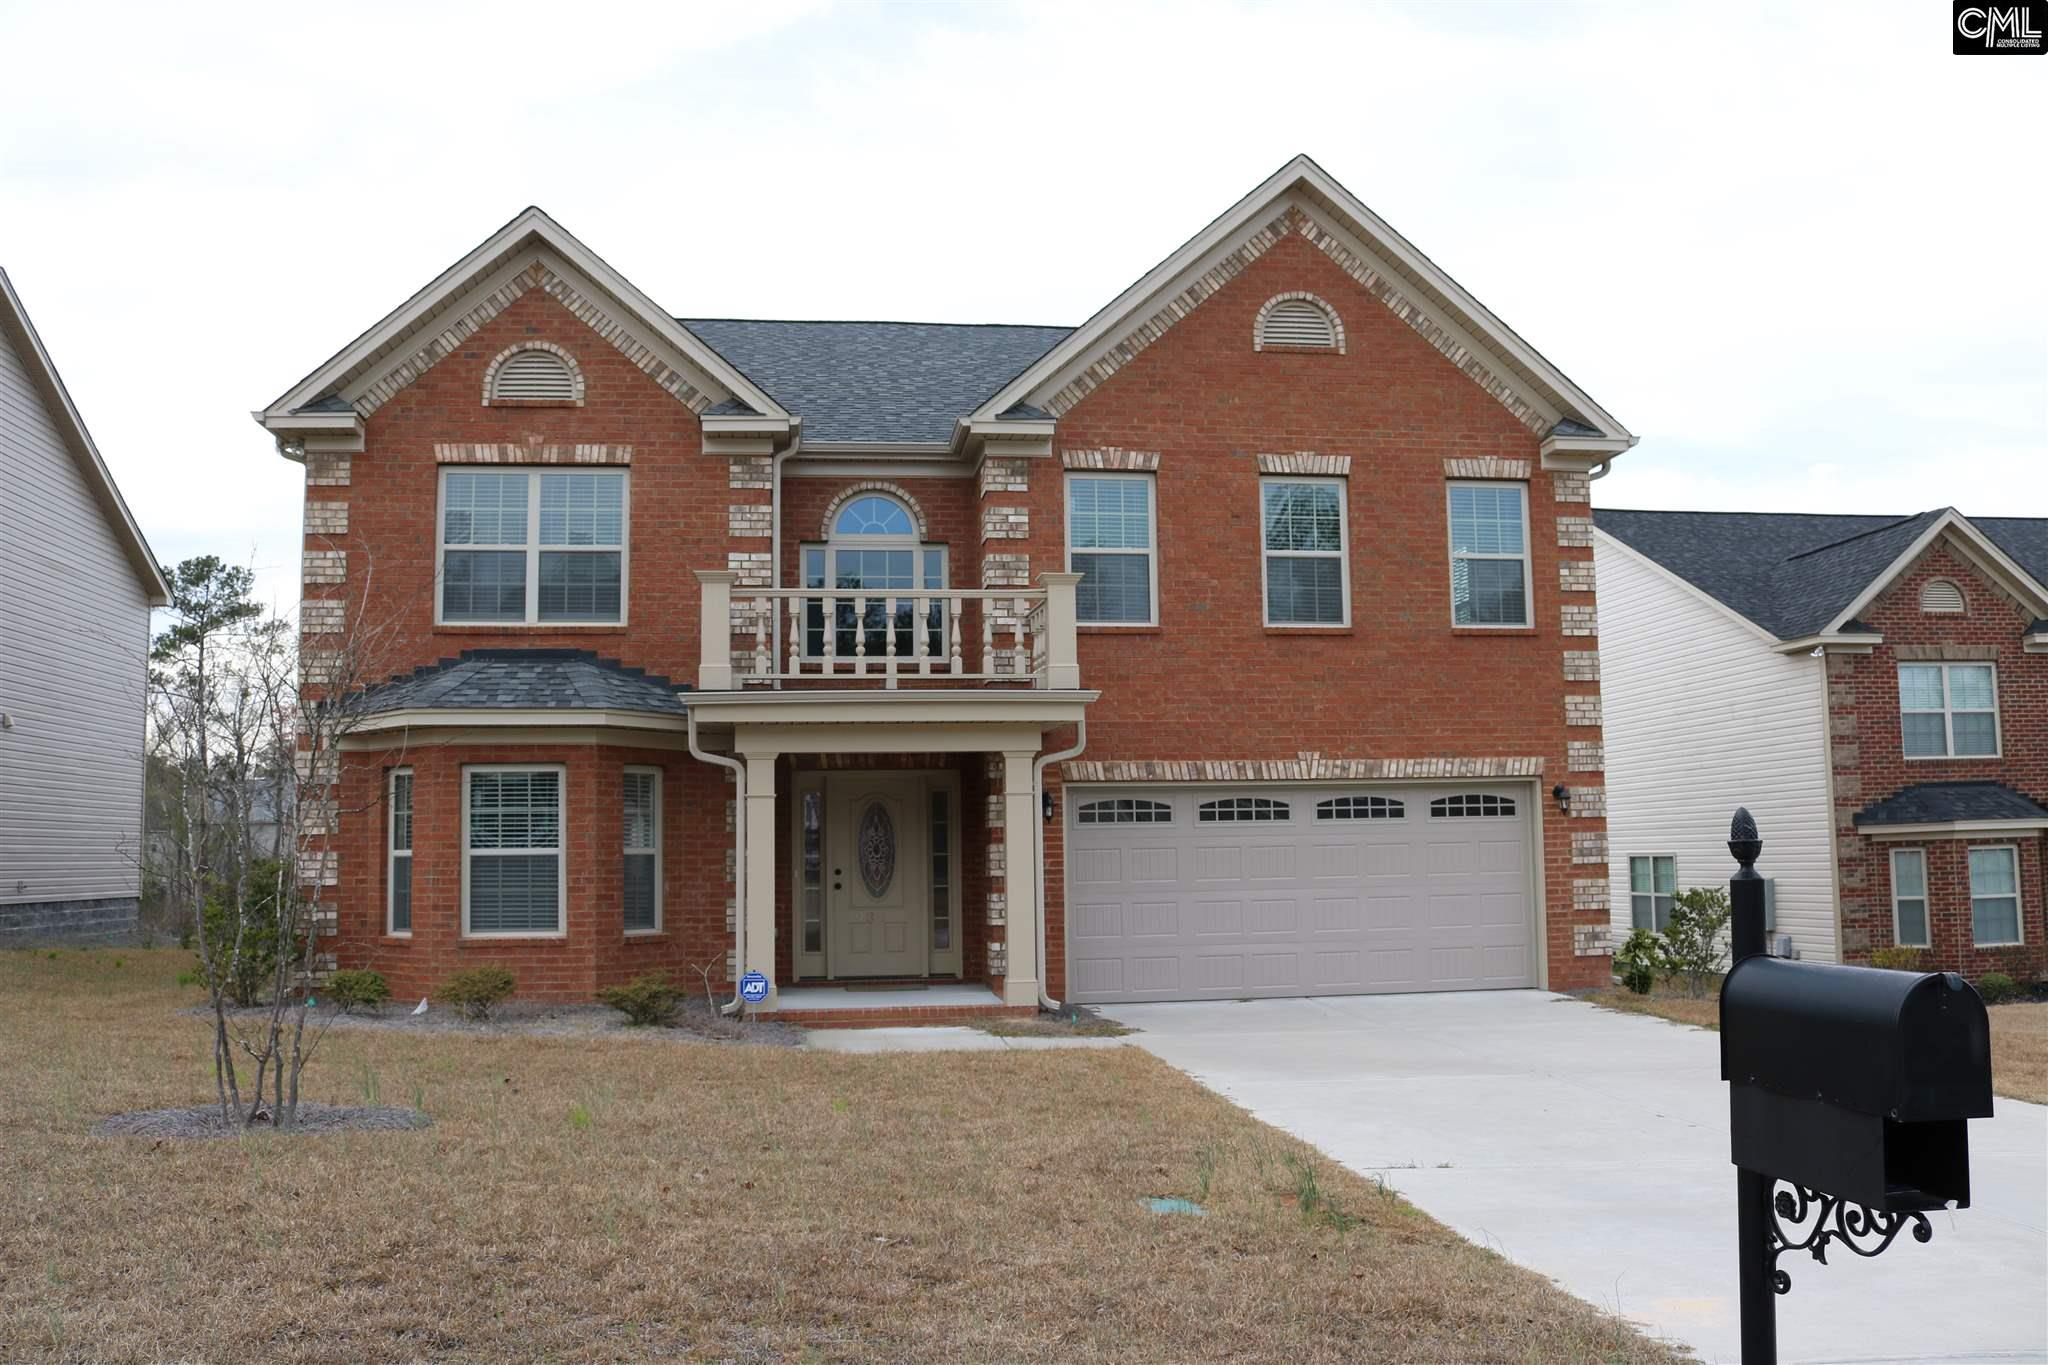 939 Whistling Duck Ct # C, Blythewood, SC 29016